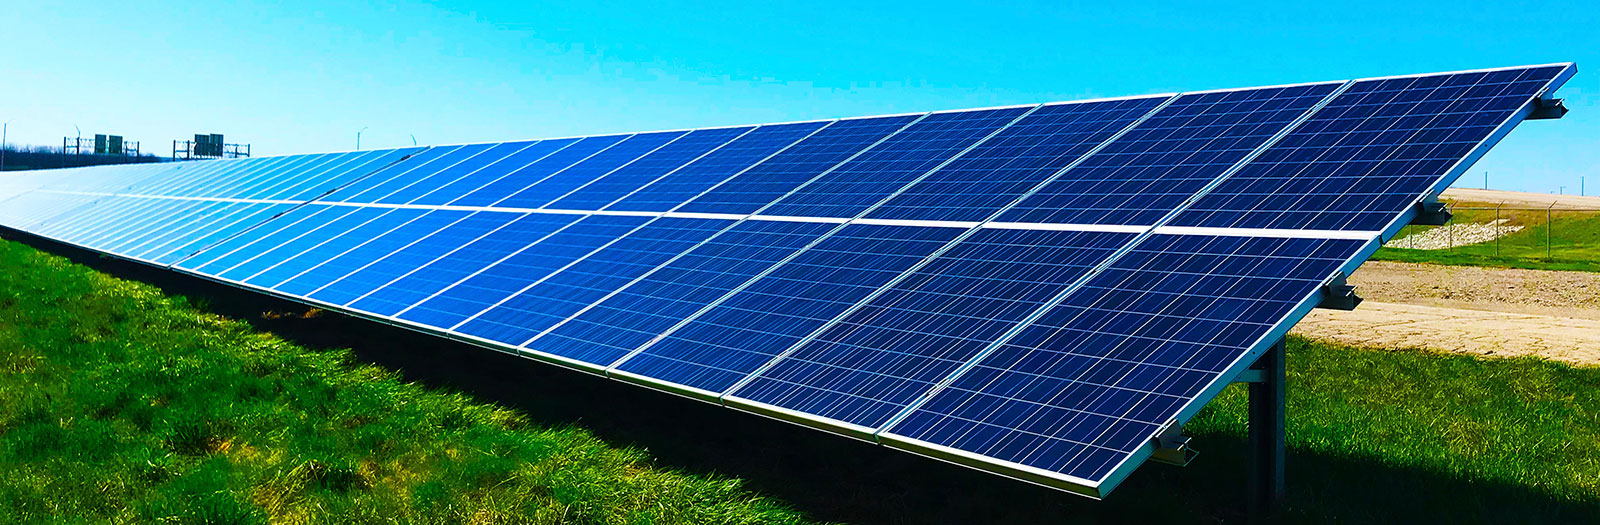 photo of solar panel on top of grass